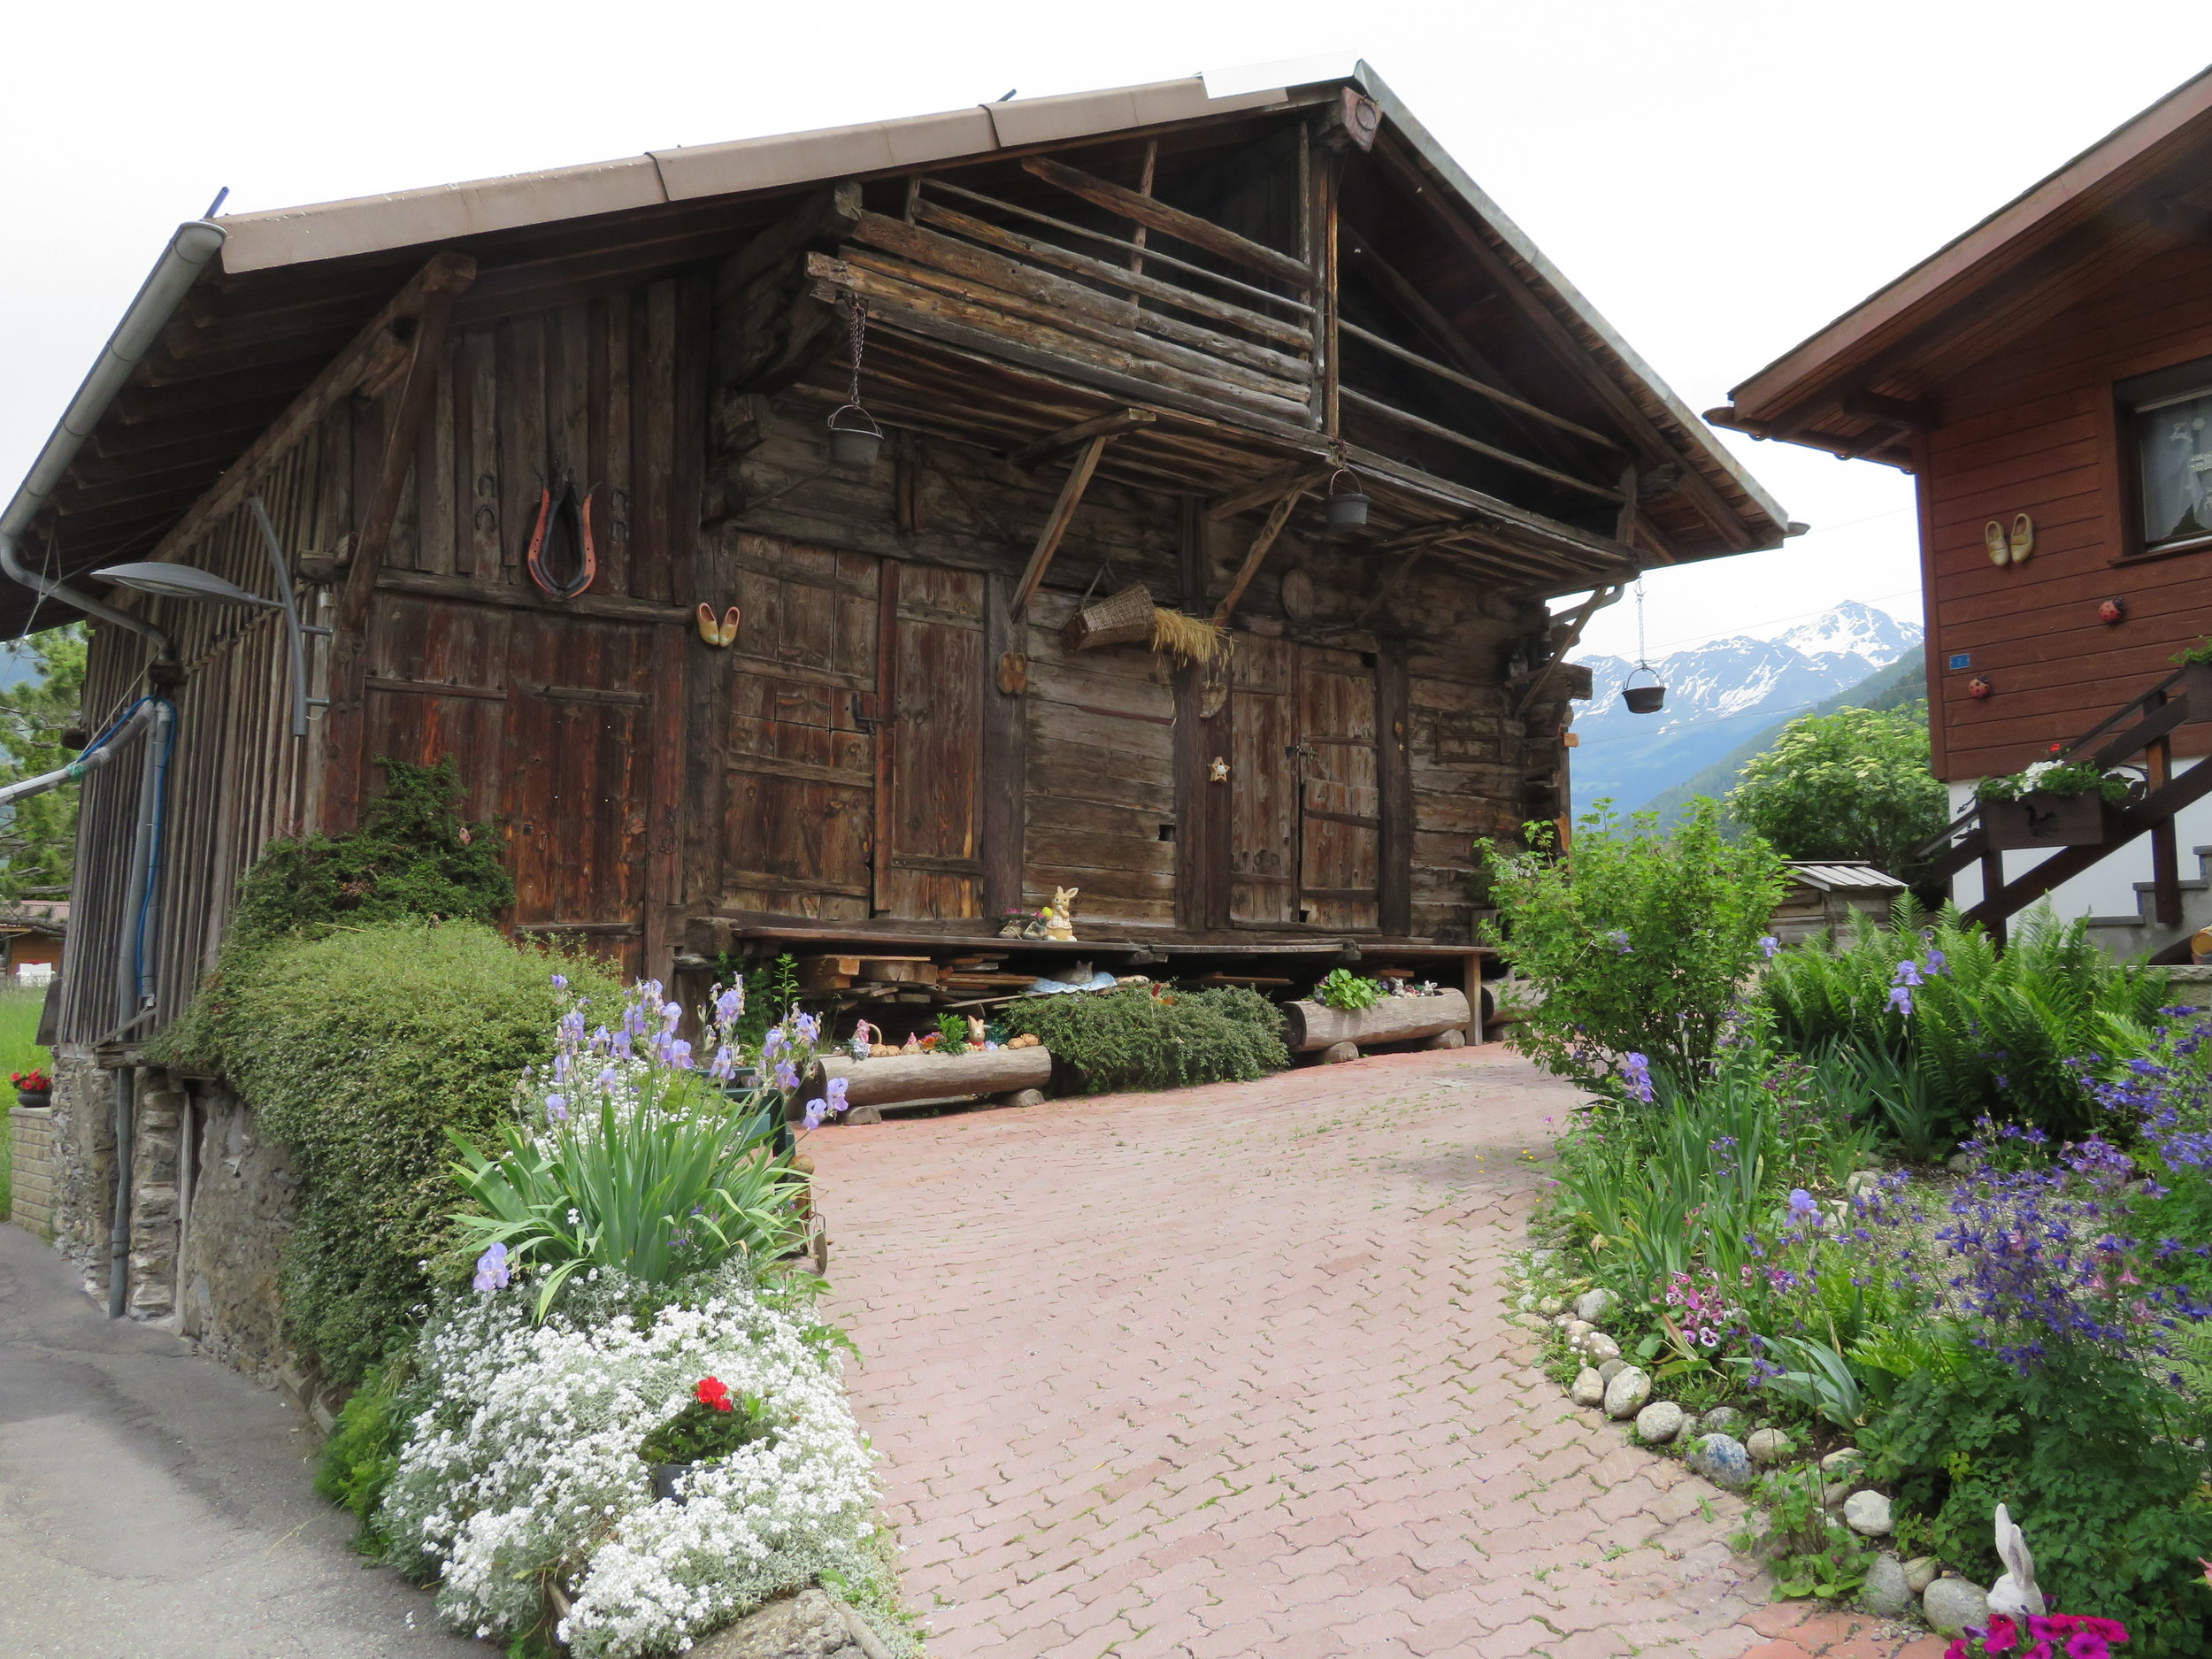 In Switzerland, even the old barns are neat and tidy